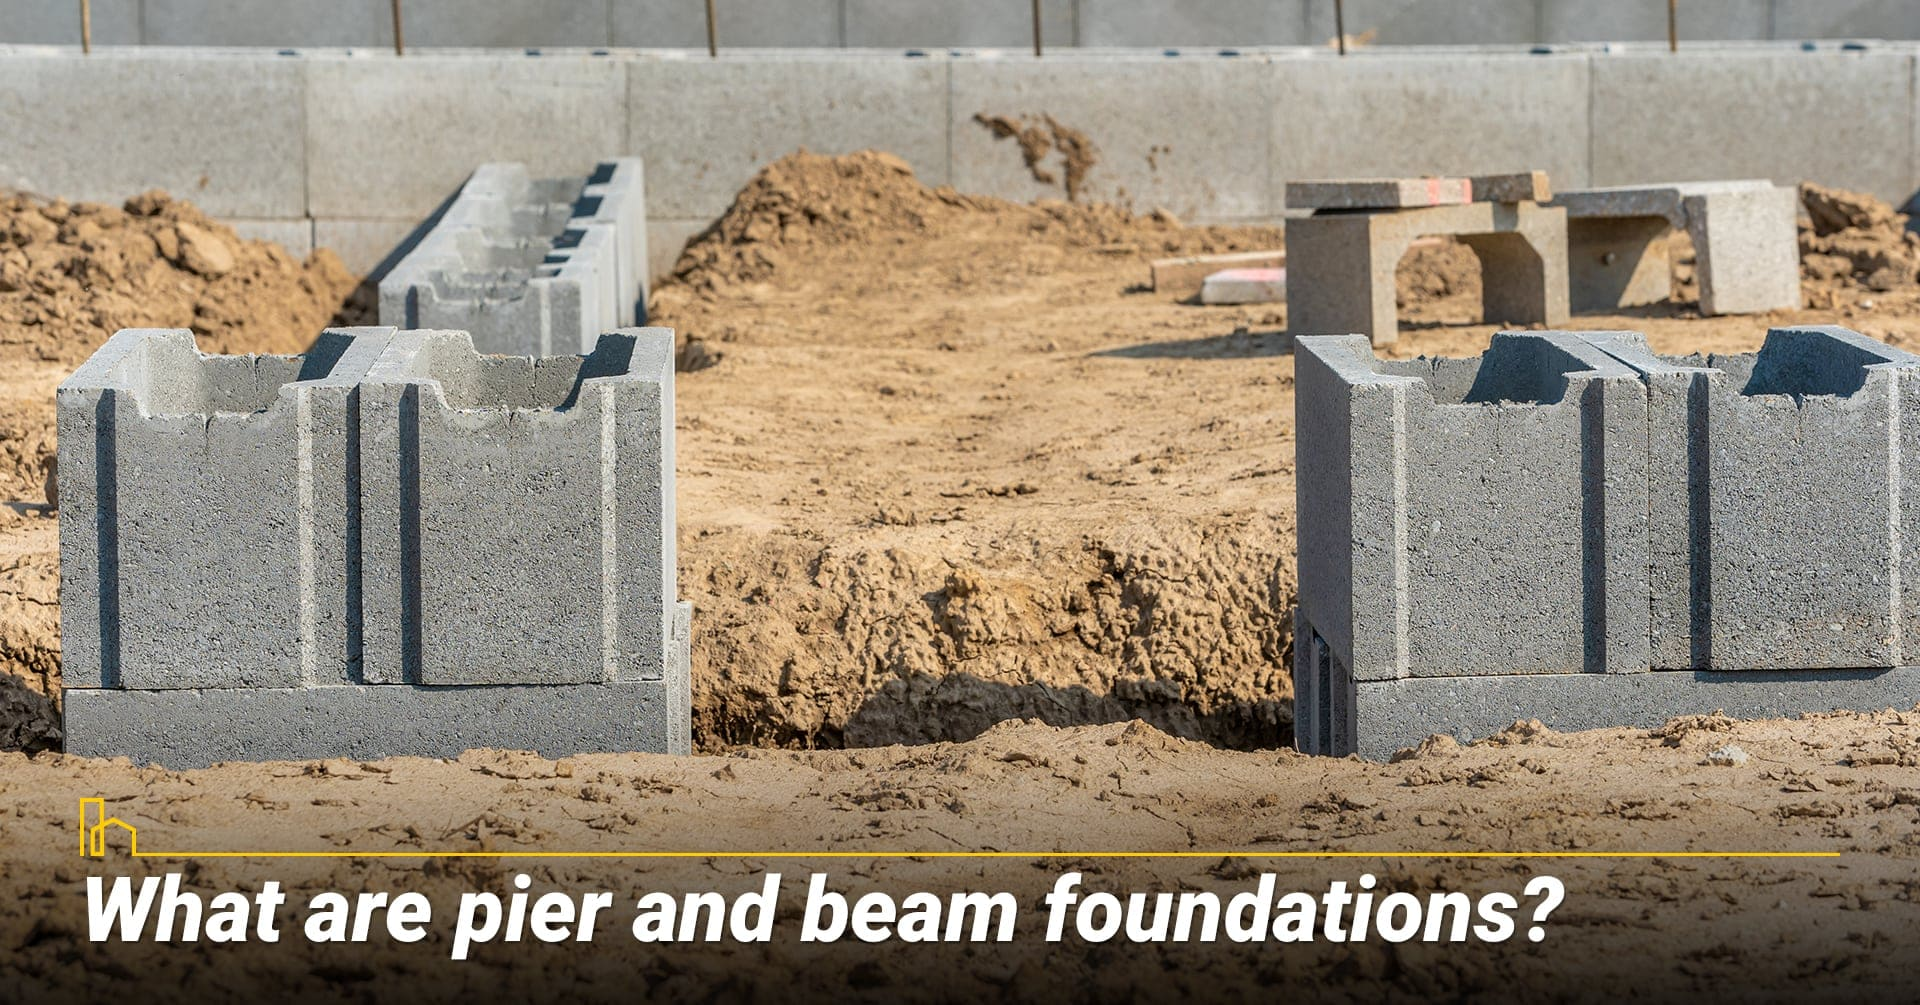 What are pier and beam foundations?foundations of your home